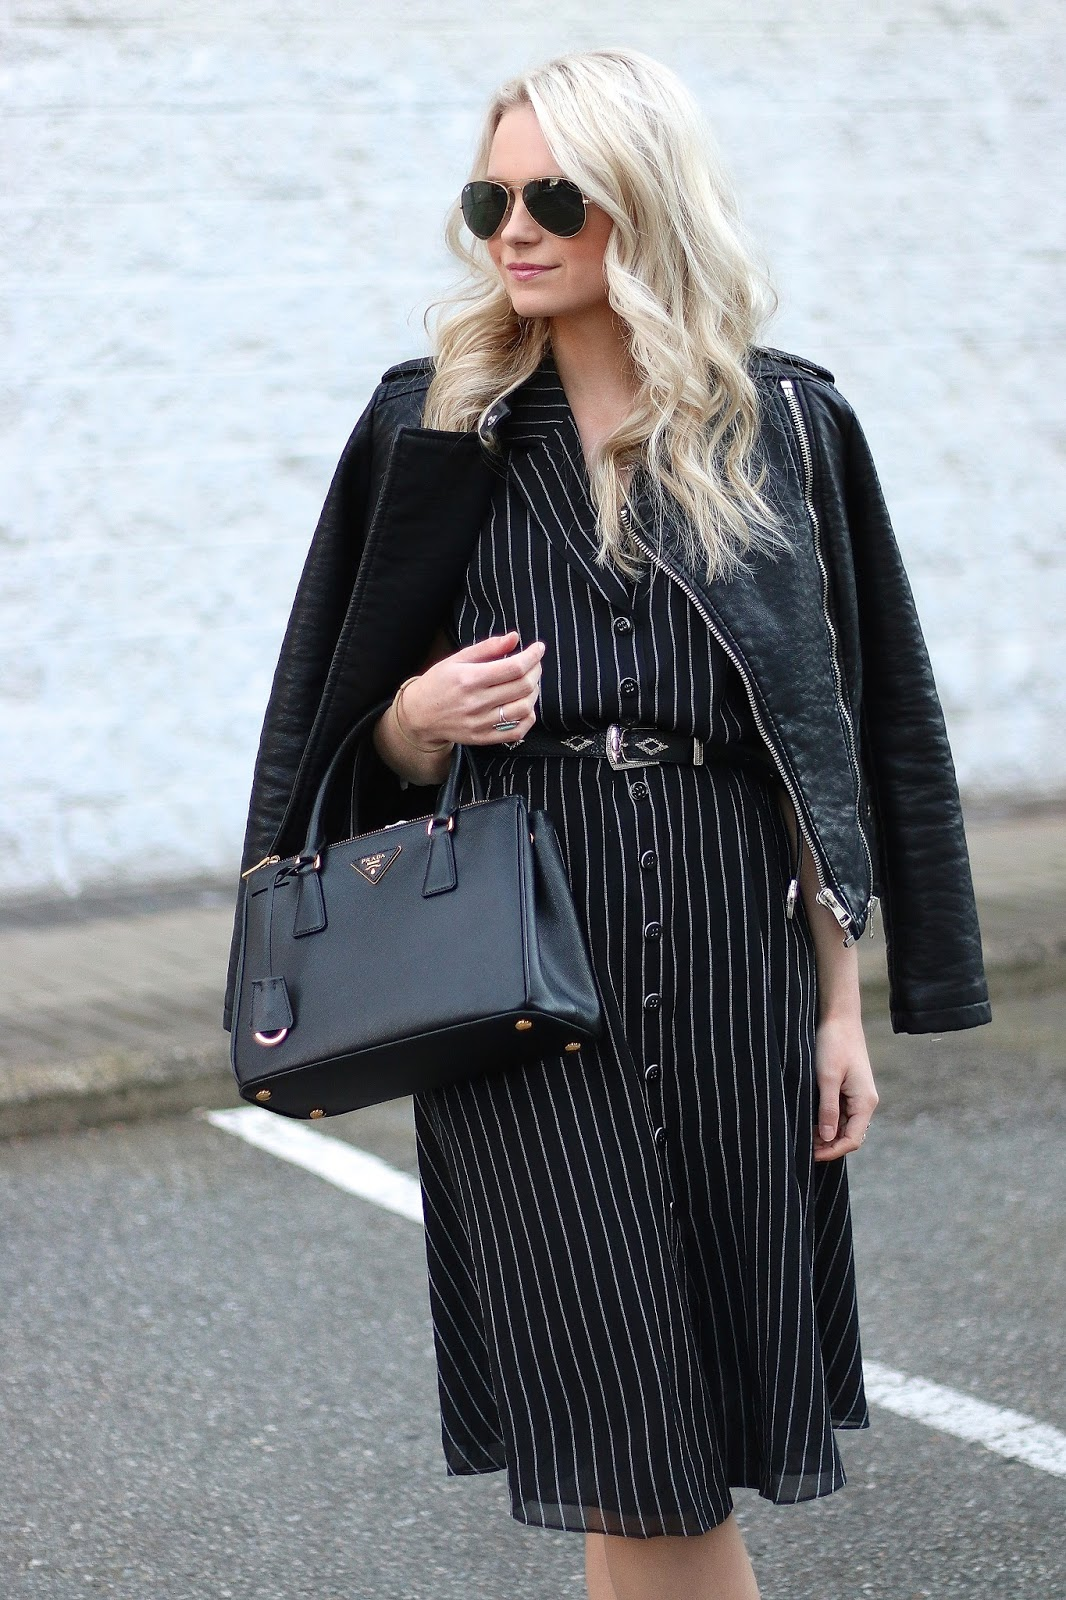 blogger wearing midi pinstripe dress and Prada handbag